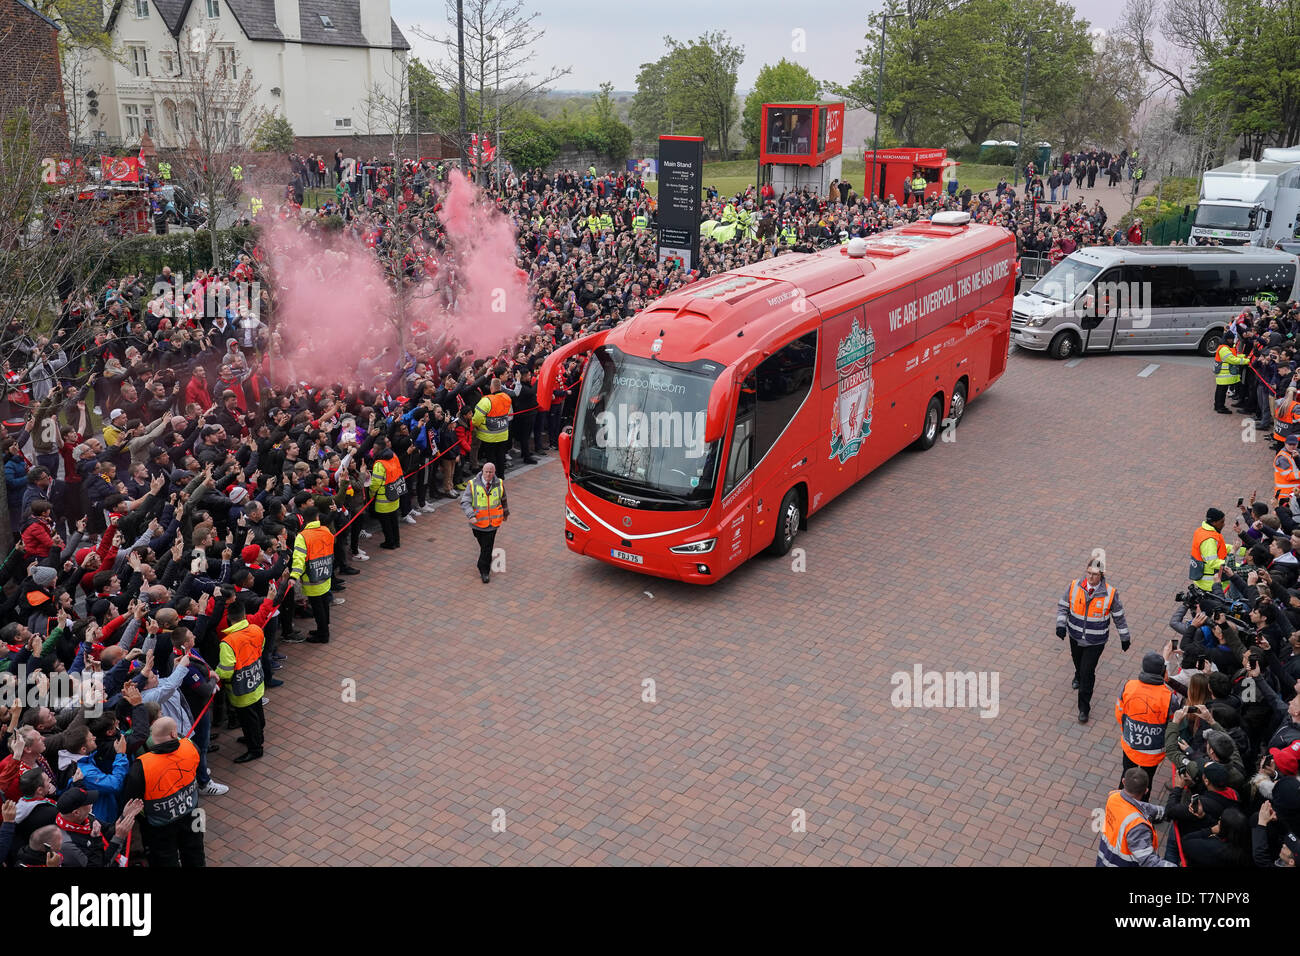 fc barcelona team 2019 high resolution stock photography and images alamy https www alamy com liverpool fc team coach arrives at anfield 7th mayl 2019 anfield stadium liverpool england uefa champions league semi final second leg liverpool fc vs fc barcelona credit terry donnellynews images image245726748 html